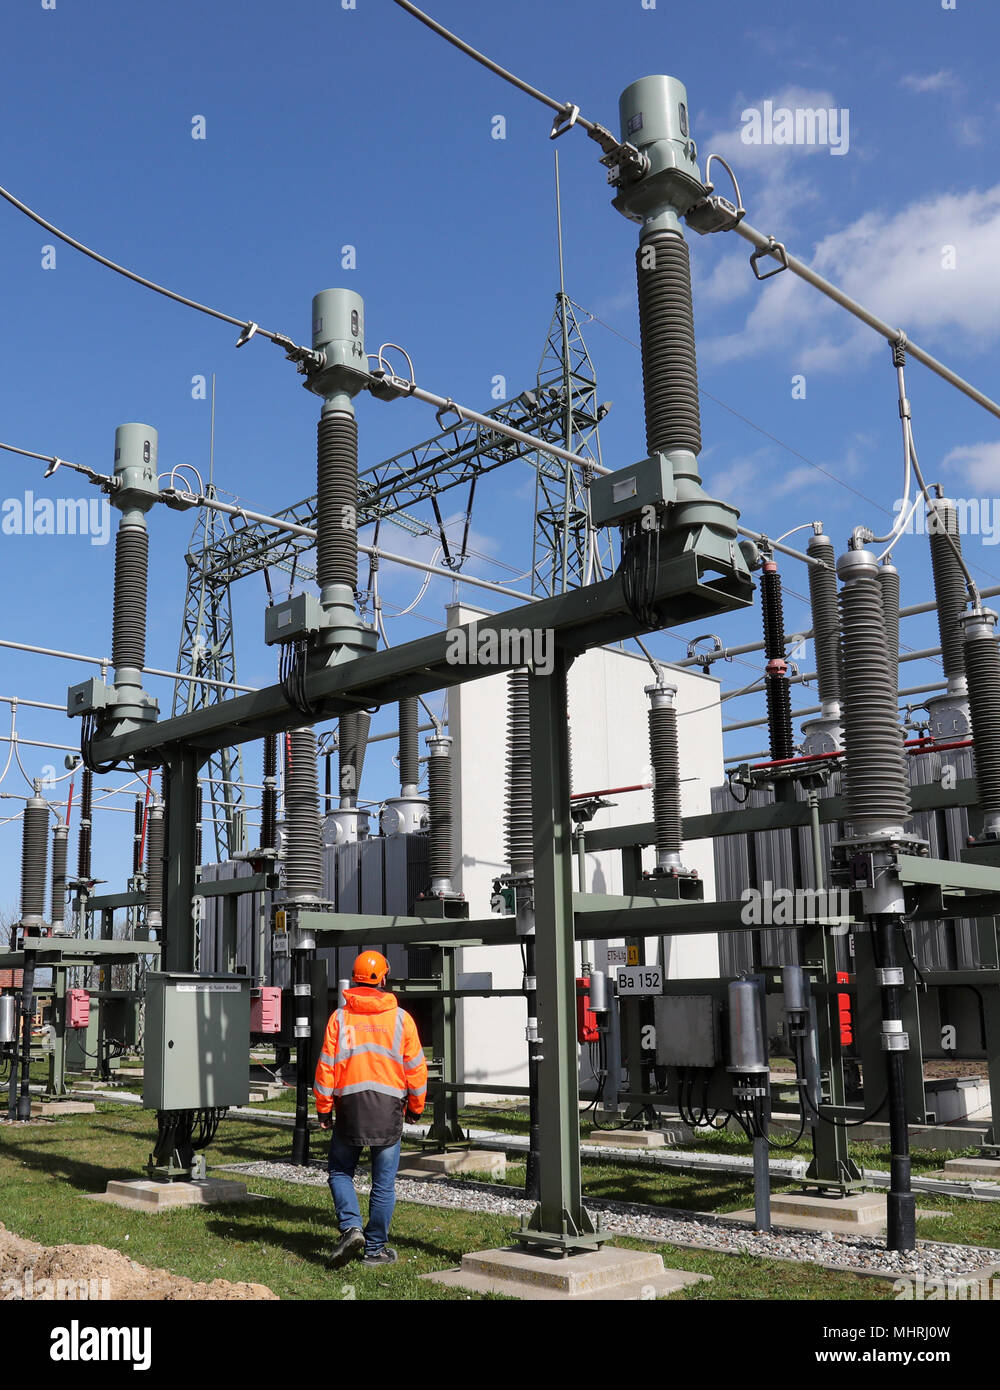 17 April 2018 Germany Bentwisch A Staff Member Of Grid Operator The Electric Circuits That Unit Which Converts Electrical Energy 50hertz Walks Through Large Switchboard At New Transformer Substation